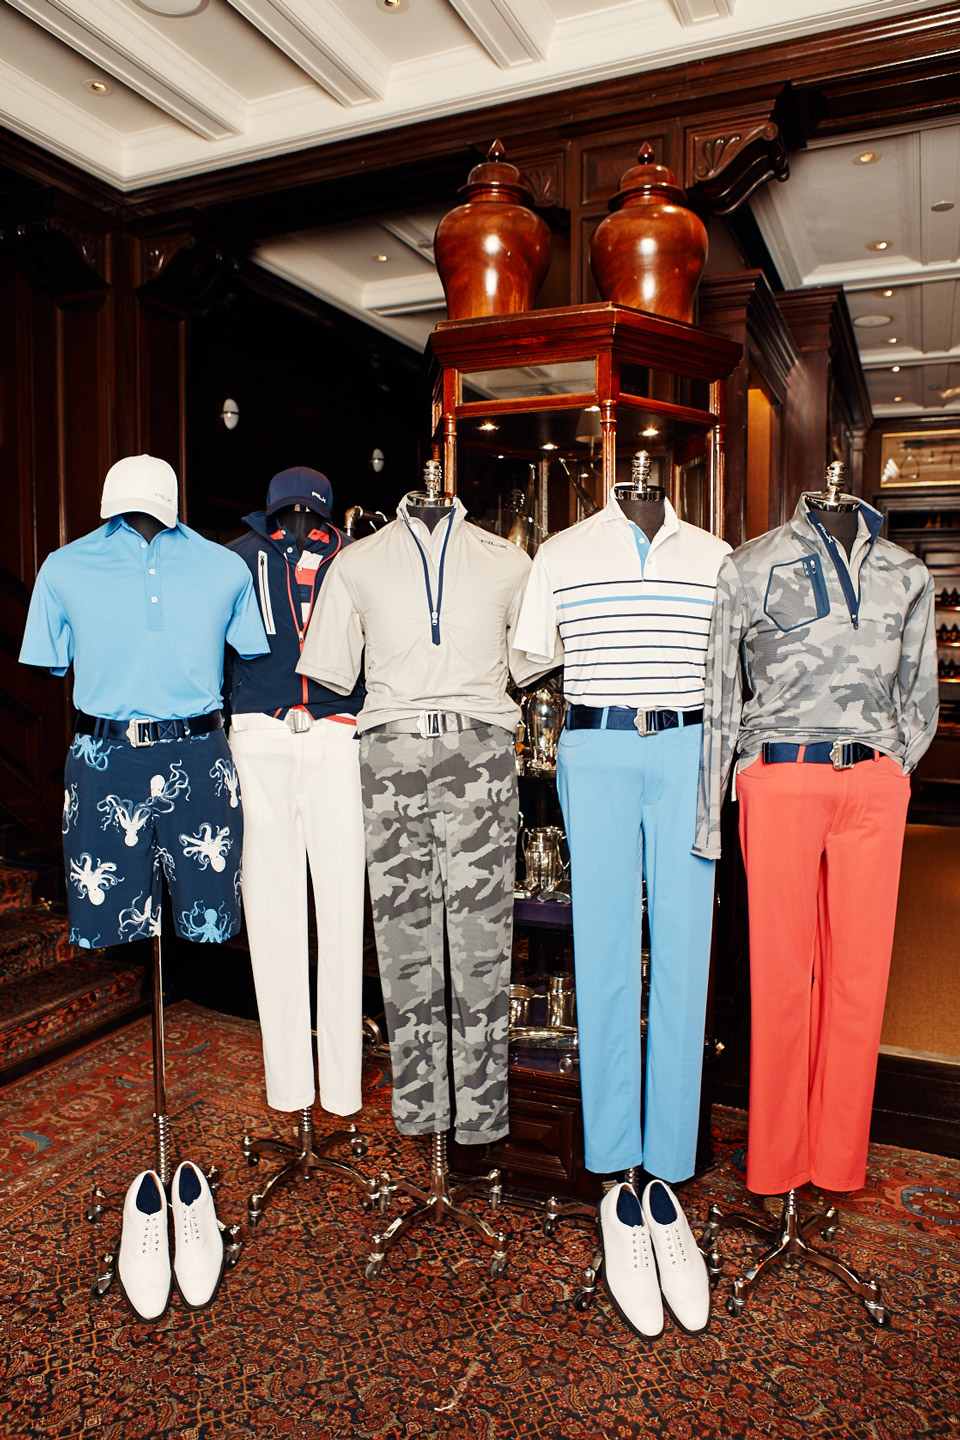 The RLX x Billy Horschel Collection. Horschel will wear each outfit from left to right on Wednesday through Sunday at the 2018 PGA Championship.